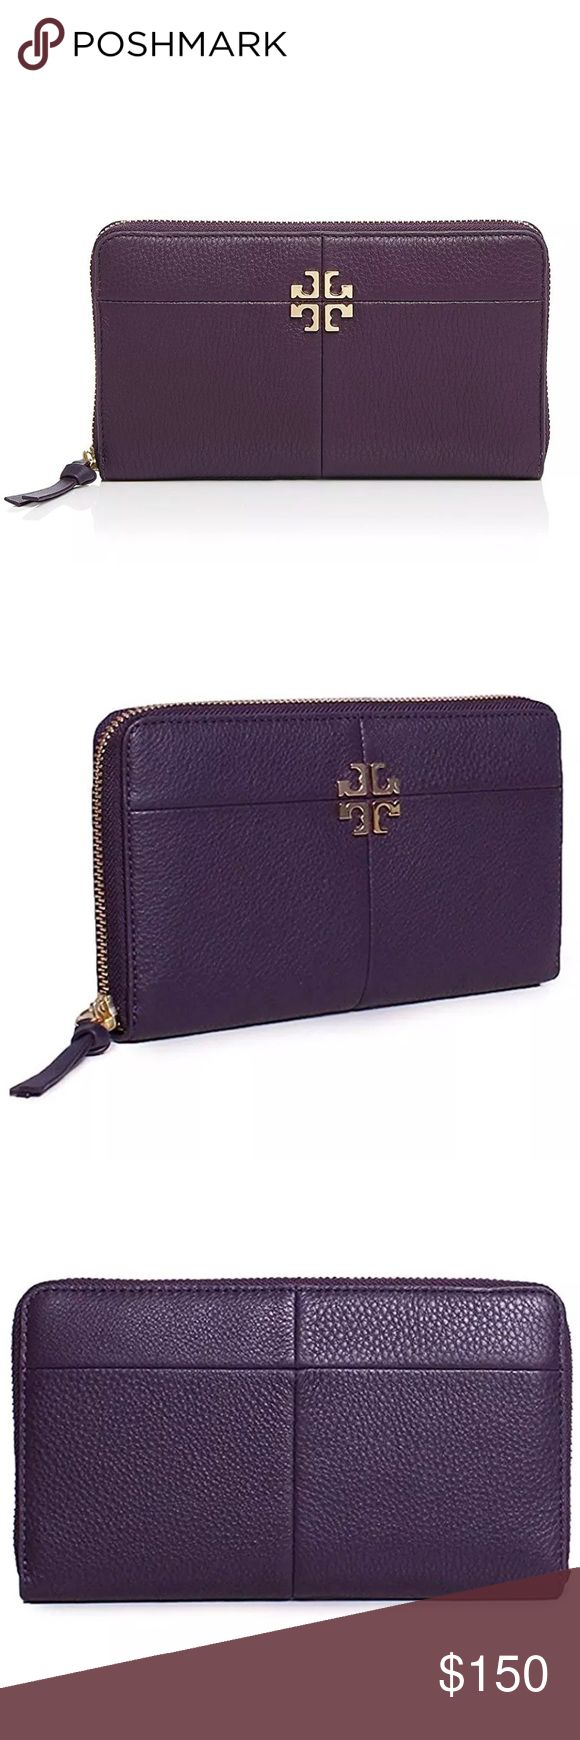 "Tory Burch Black Ivy Zip Continental Wallet Guaranteed 100% authentic & in excellent brand new condition w/ original tags  MSRP: $225.00 + TAX 🚫TRADE    Exterior - Pebbled leather body - Color: Nightshade  - Gold tone hardware - Zip around closure - 1 zipper pocket - Raised designer emblem  Interior - Leather and fabric lining - 2 bill sleeves, 2 slip pockets, 8 card slots, 1 zipper compartment - Debossed designer lettering  Approx: 7.9""L x 4.3""H x 1.2""D Tory Burch Bags Wallets"